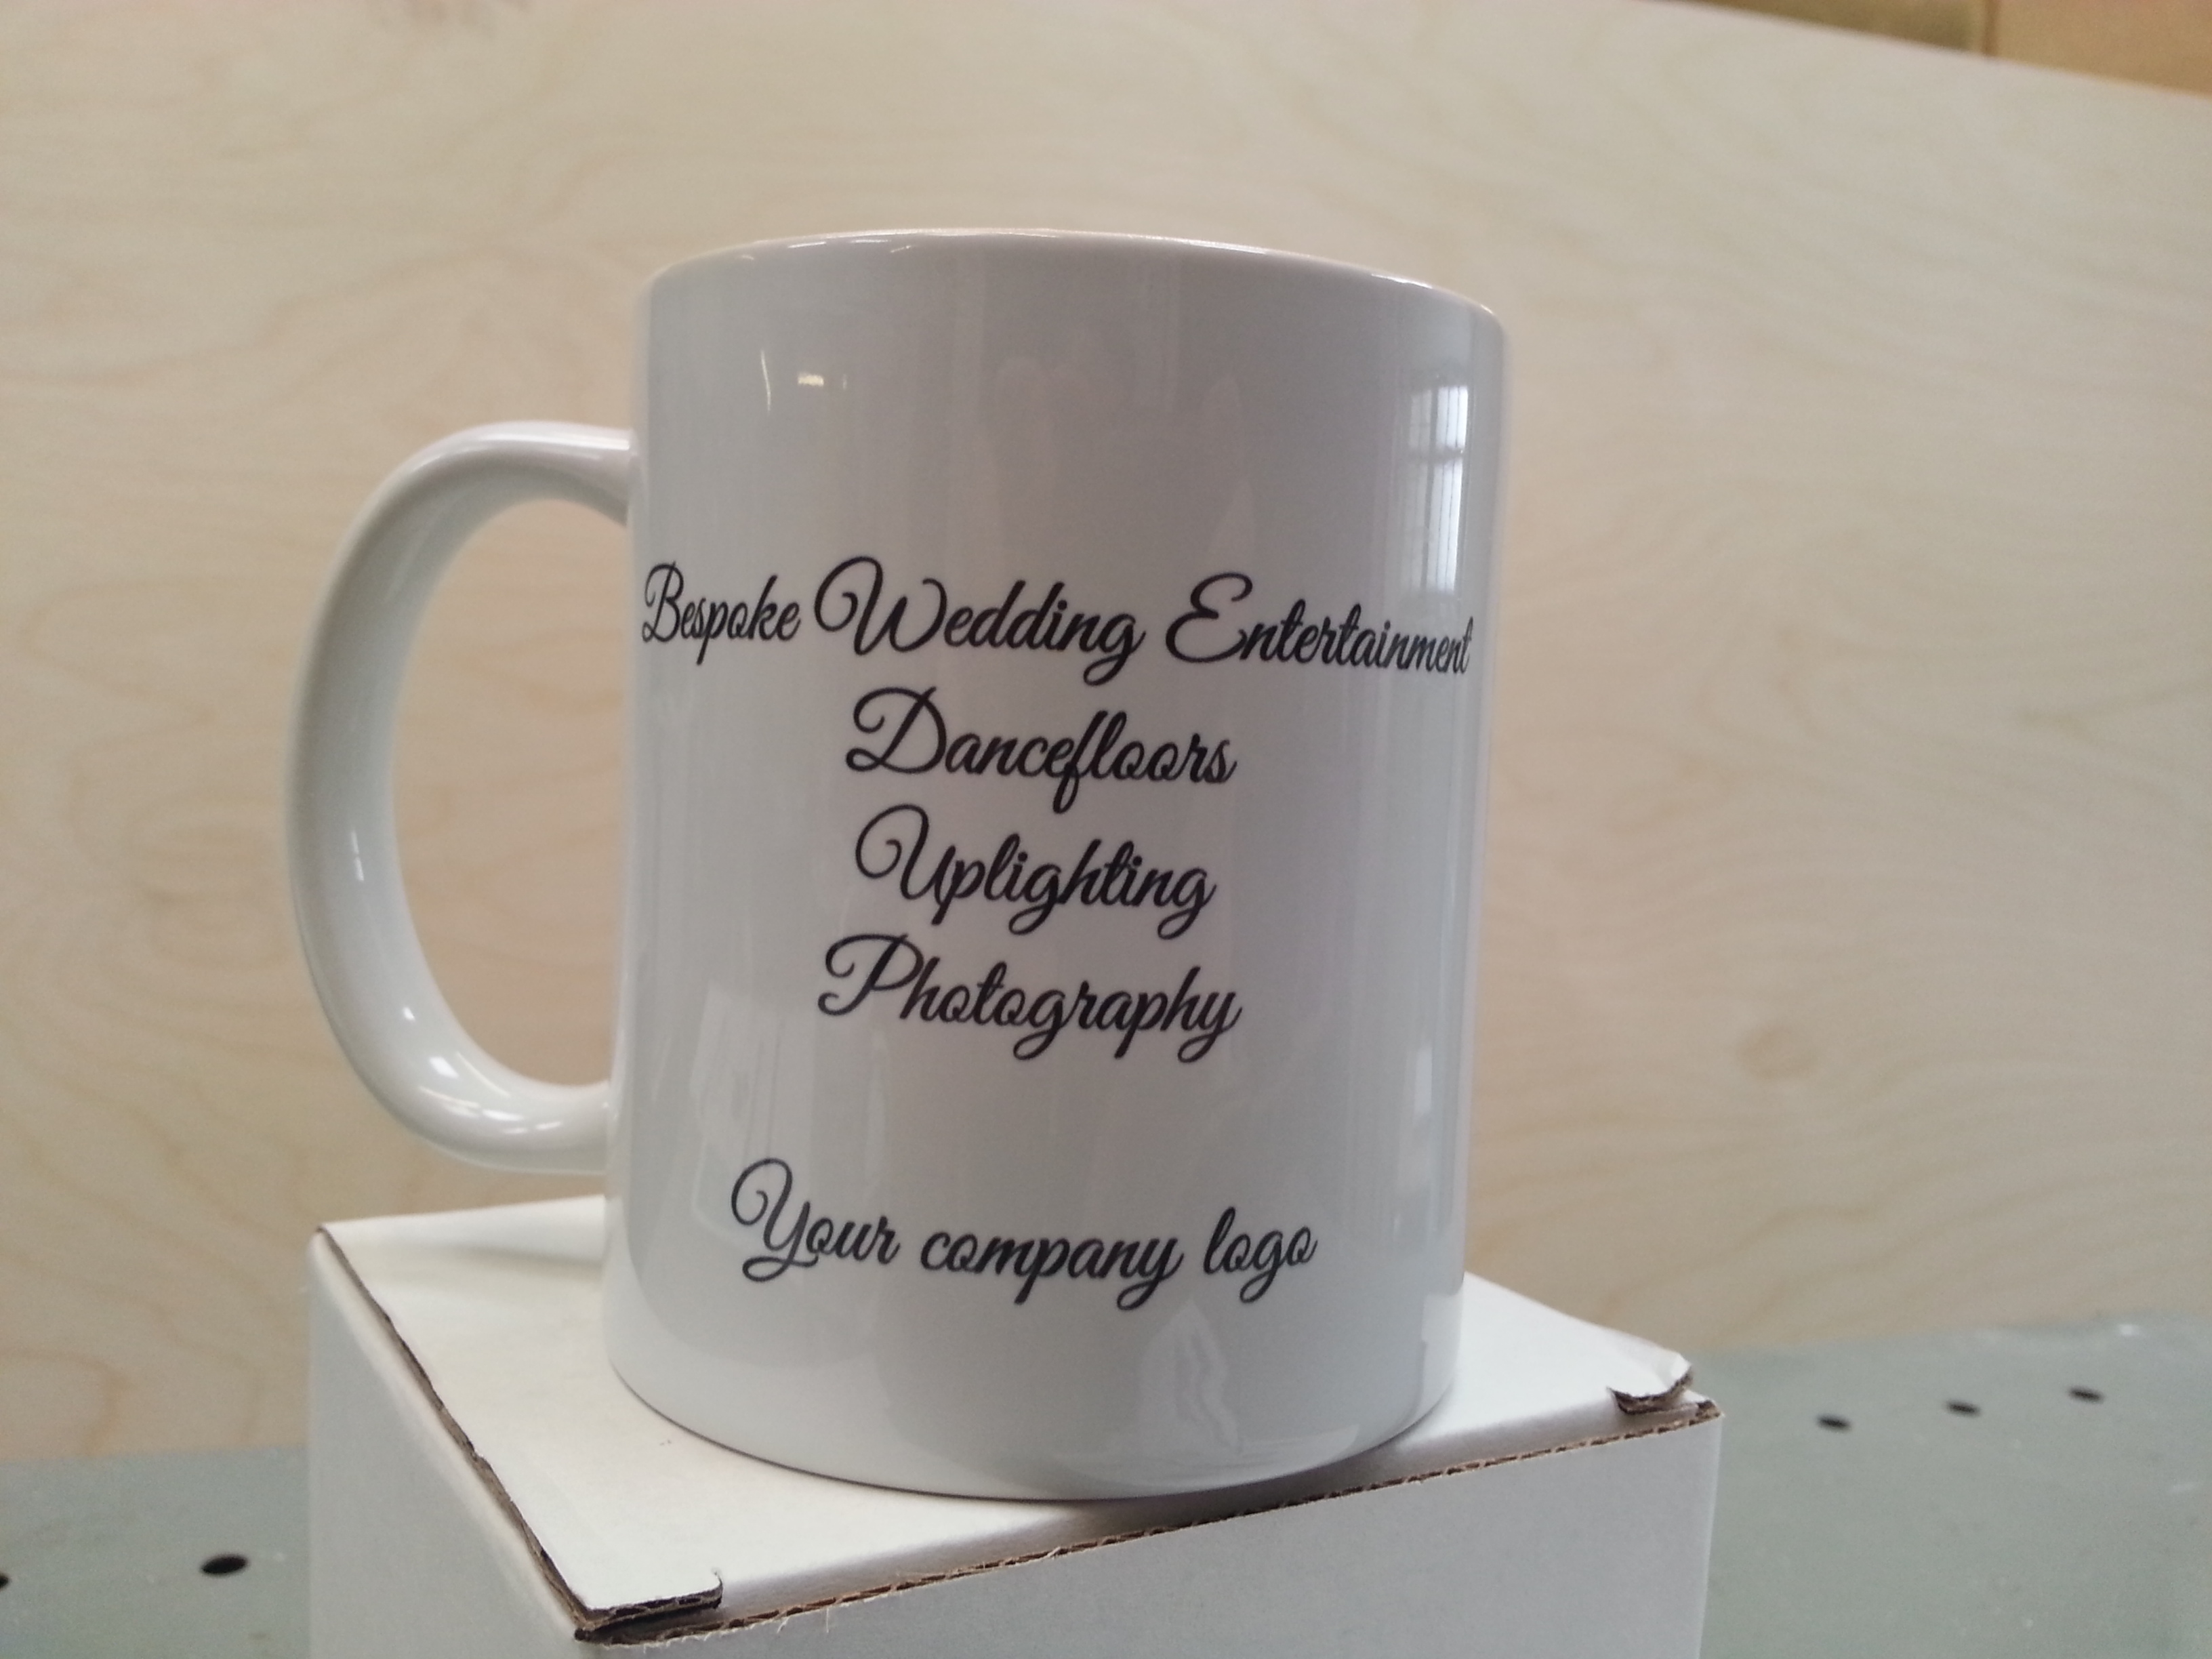 Beautiful mugs made to order